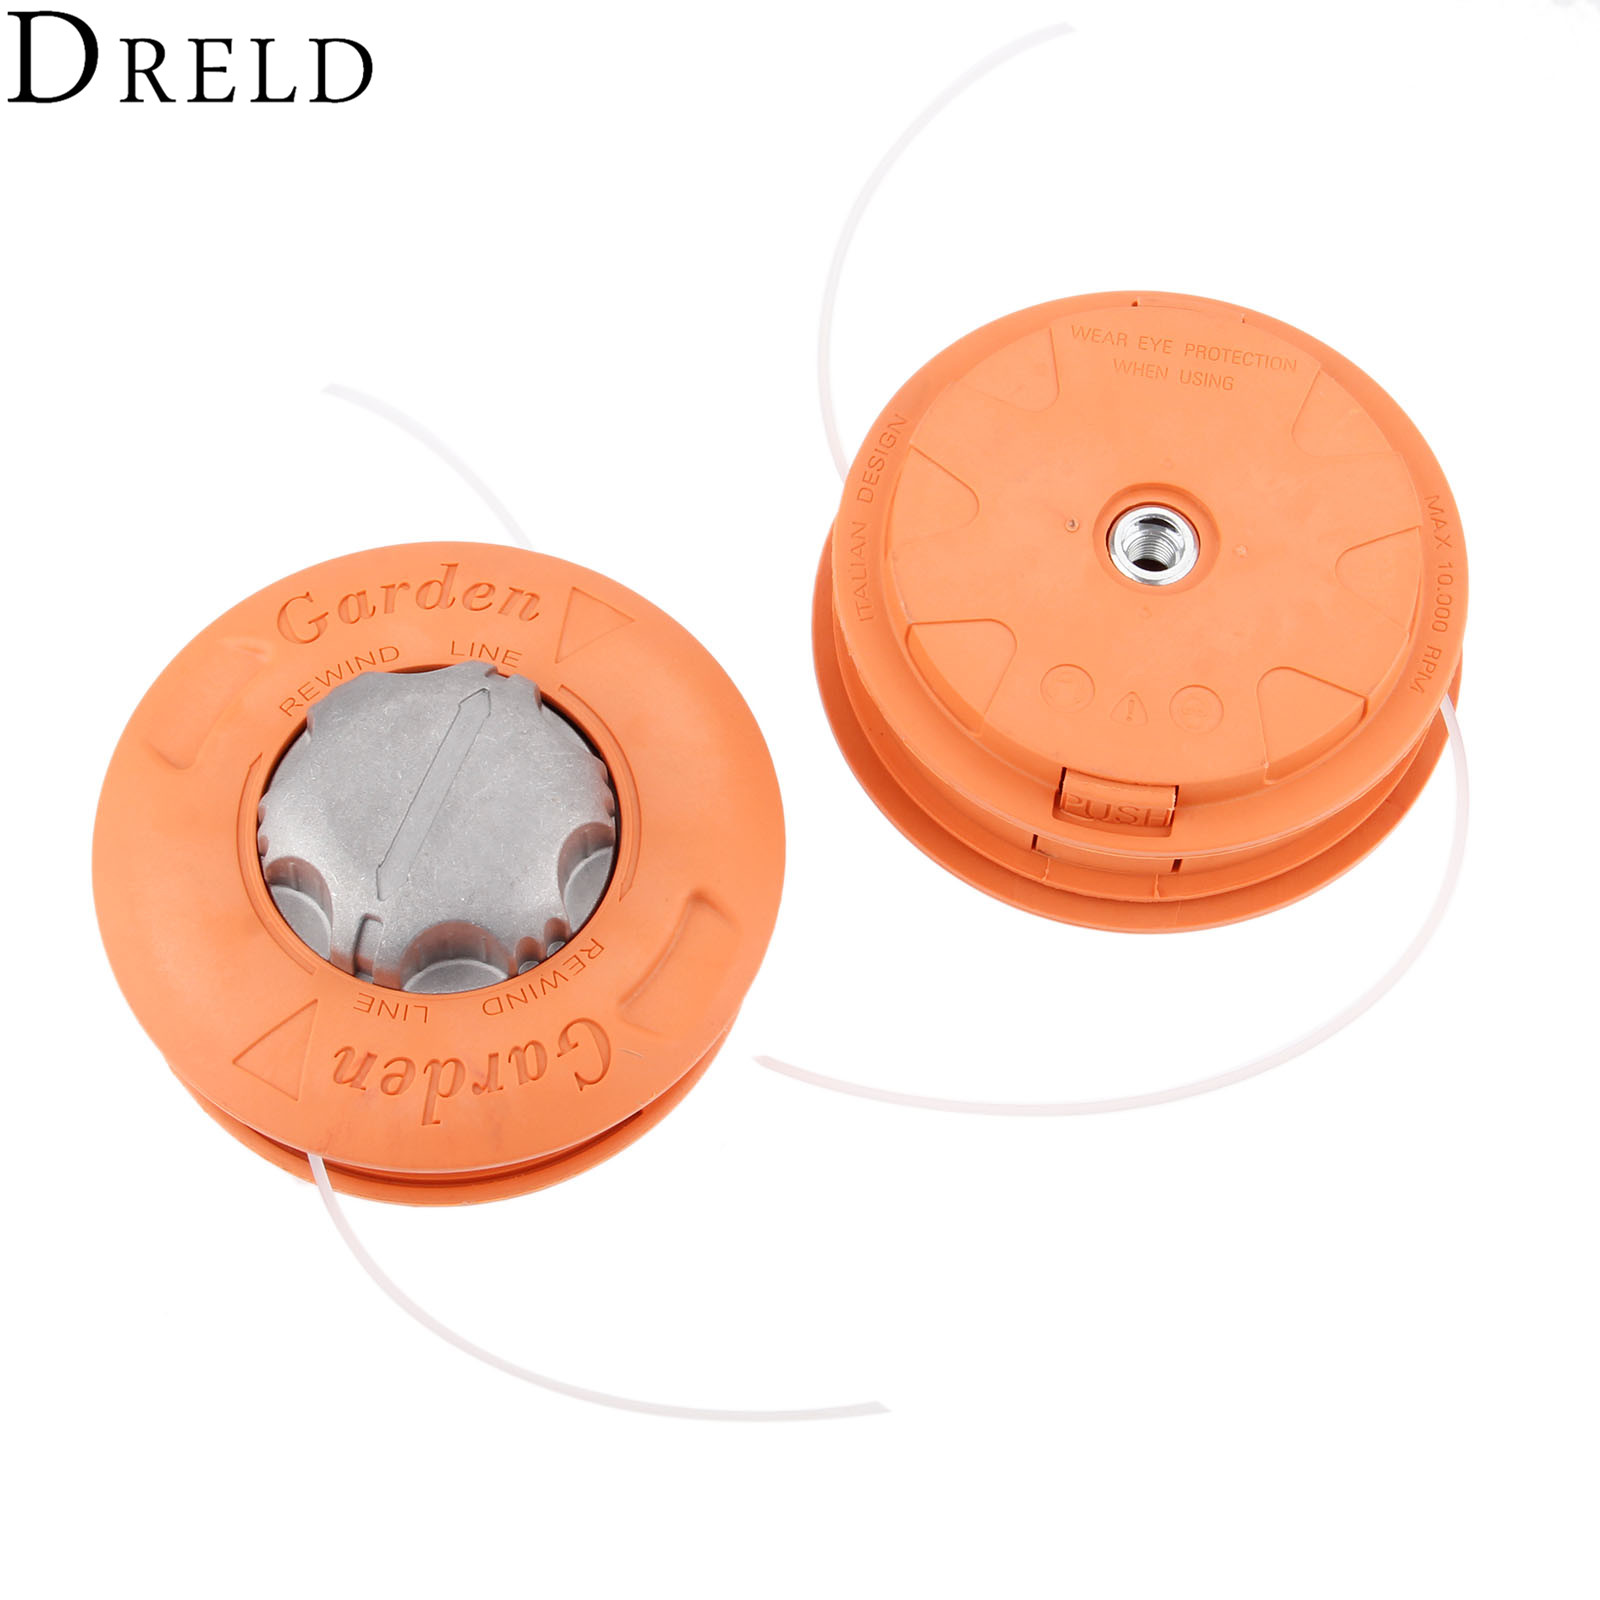 DRELD Universal Bump Feed Line Trimmer Head Aluminium Strimmer Head Grass Brush Cutter Accessory M10 Left Hand Garden Tool Parts цена